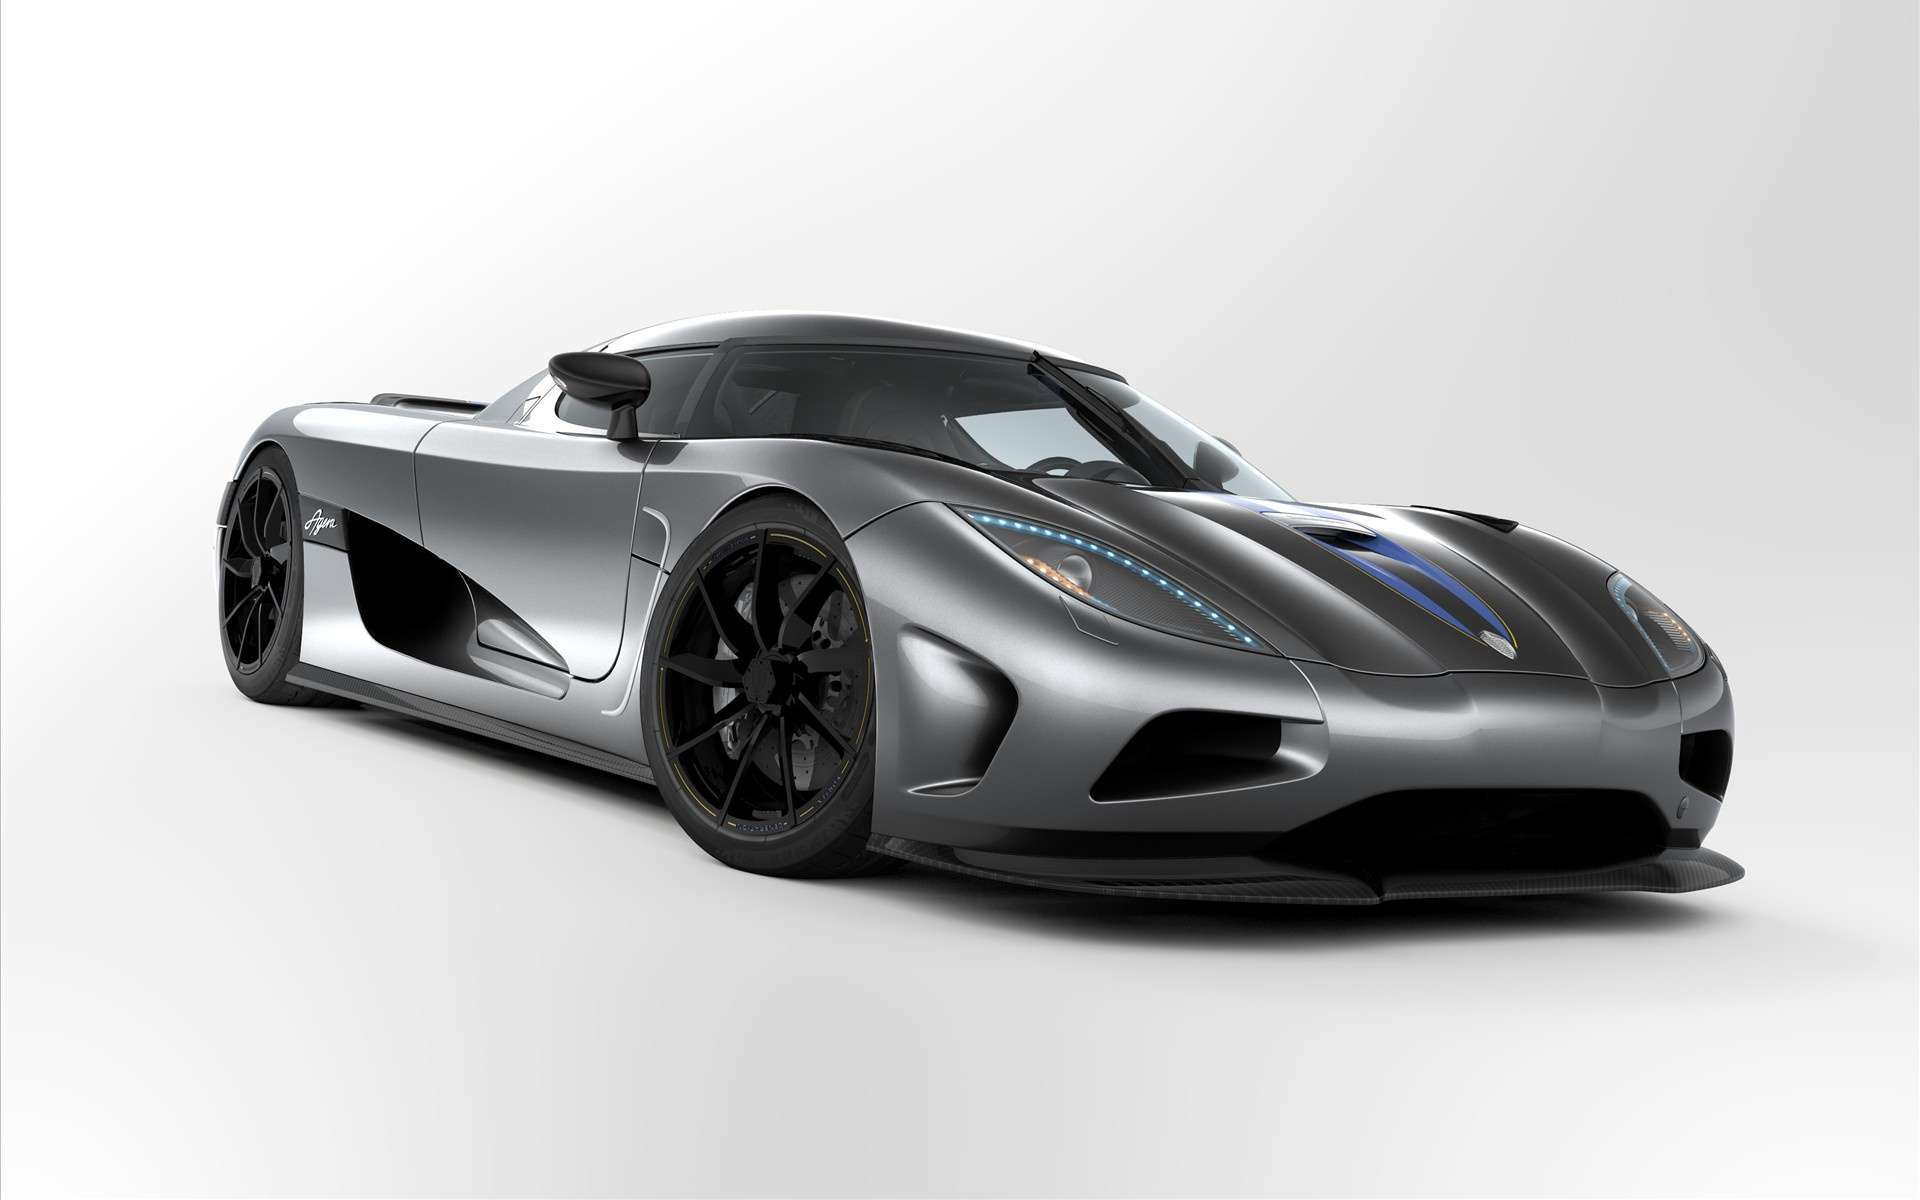 2011 Koenigsegg Agera Super Car HD Widescreen Wallpapers Cars ...